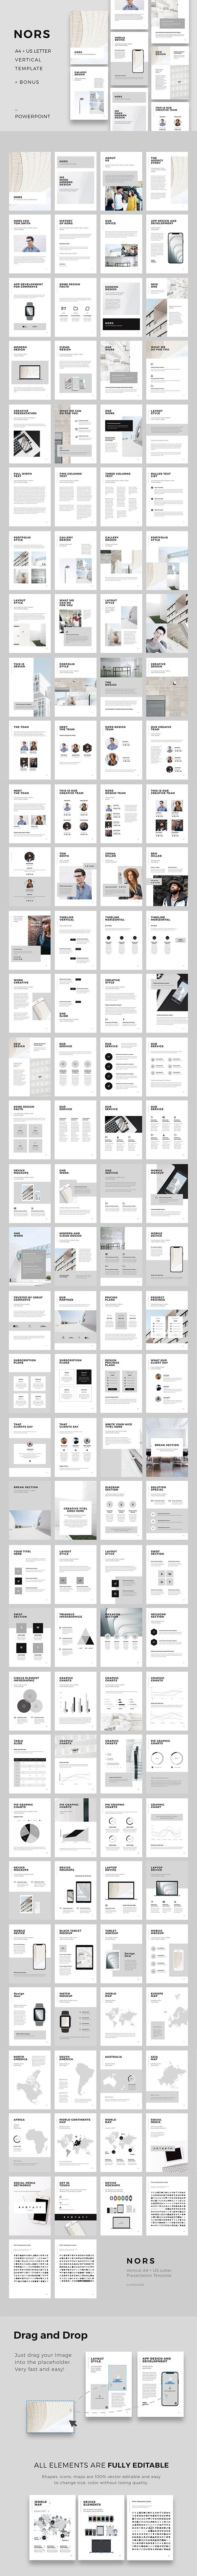 NORS - Vertical A4 + US Letter Powerpoint + Bonus: 20 Stock Photos & 4 Psd MockupsClean, modern and minimal Vertical Powerpoint Template in A4 & US Letter Printable Format. This layout gives you many possibilities of creativity. Perfect for Presentation…